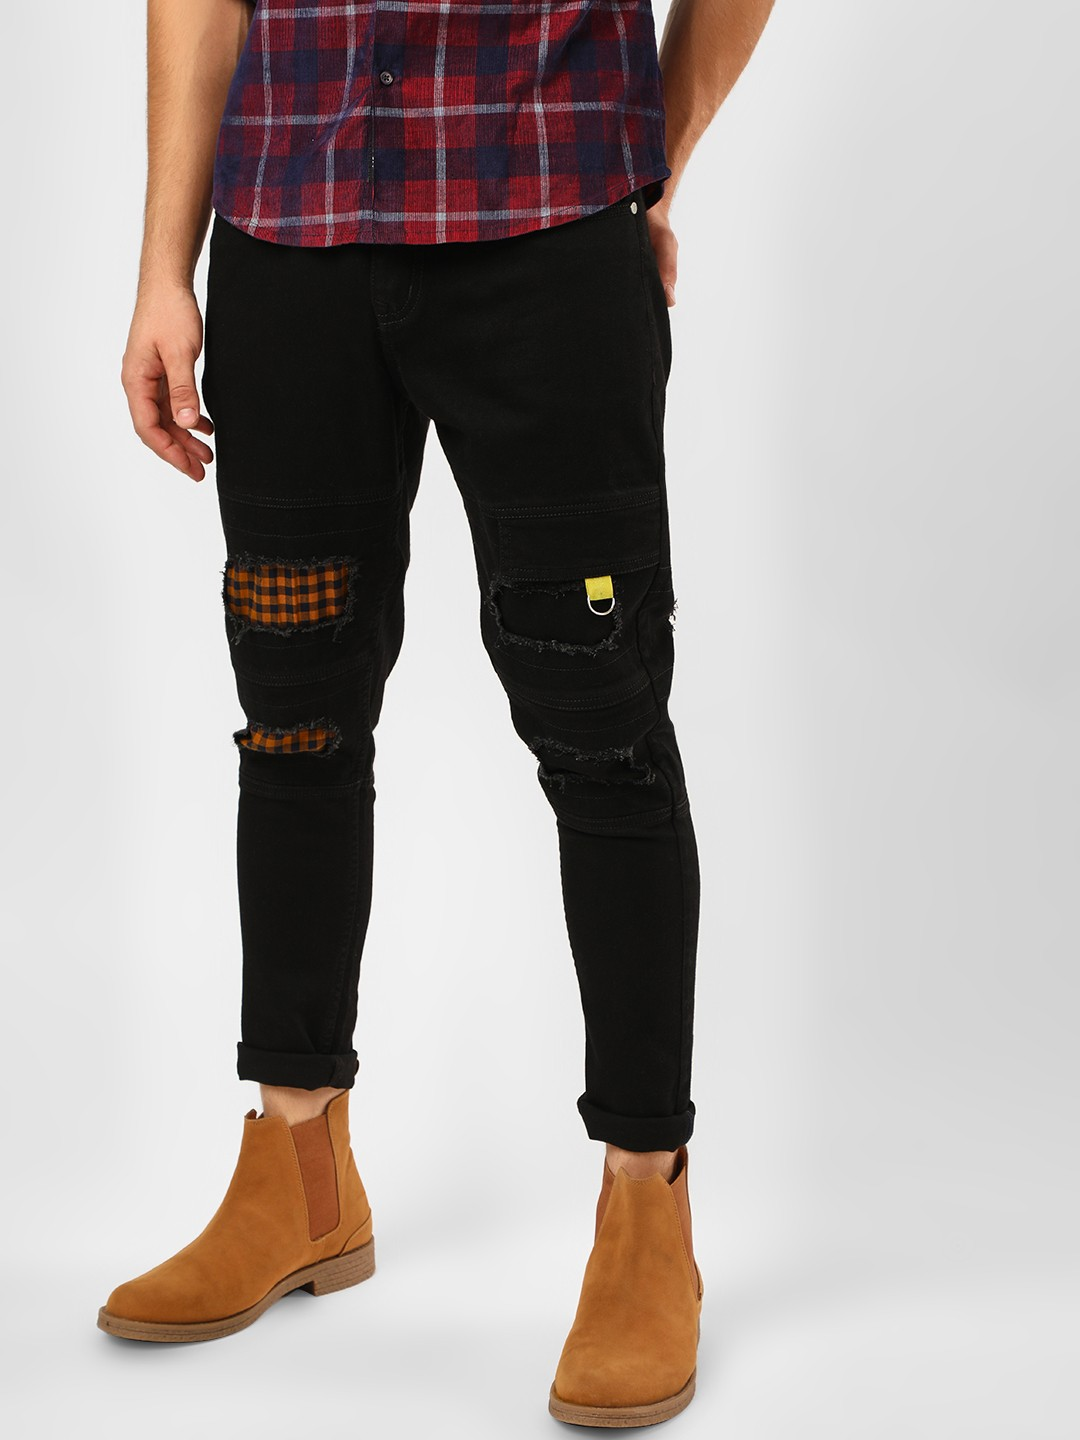 K Denim Black KOOVS Patchwork & Paneled Skinny Jeans 1